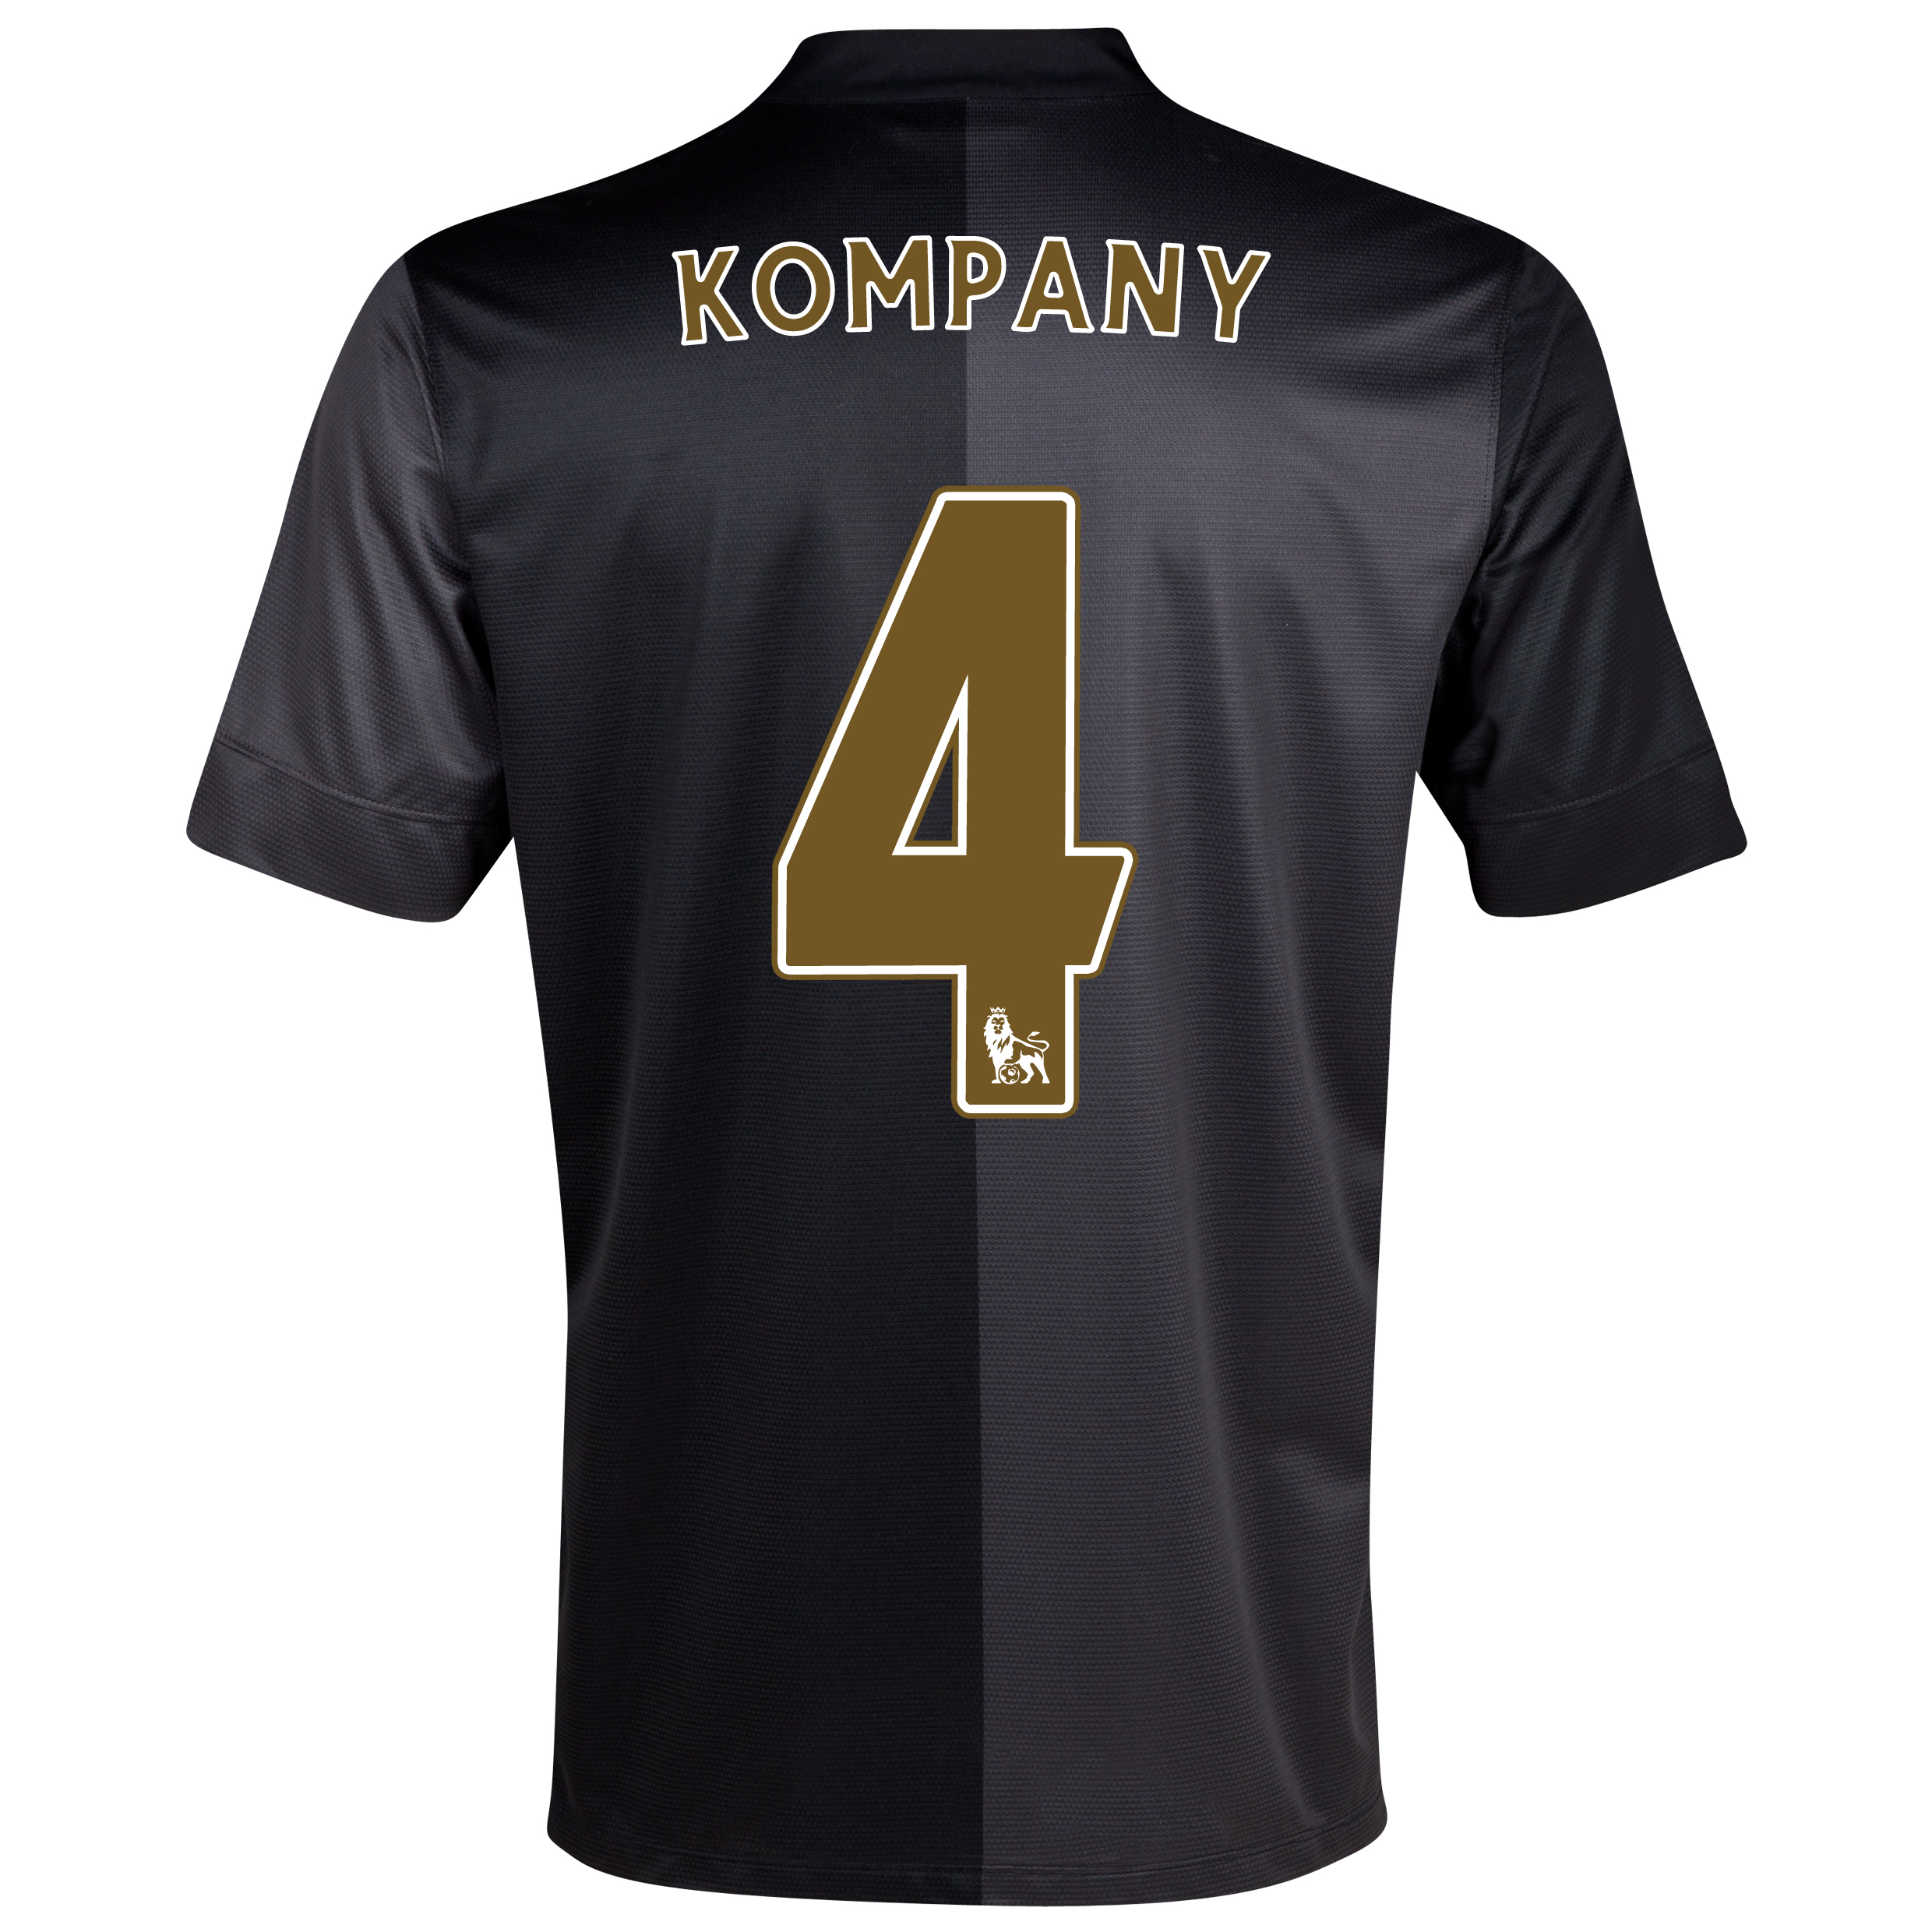 Kompany hero shirts